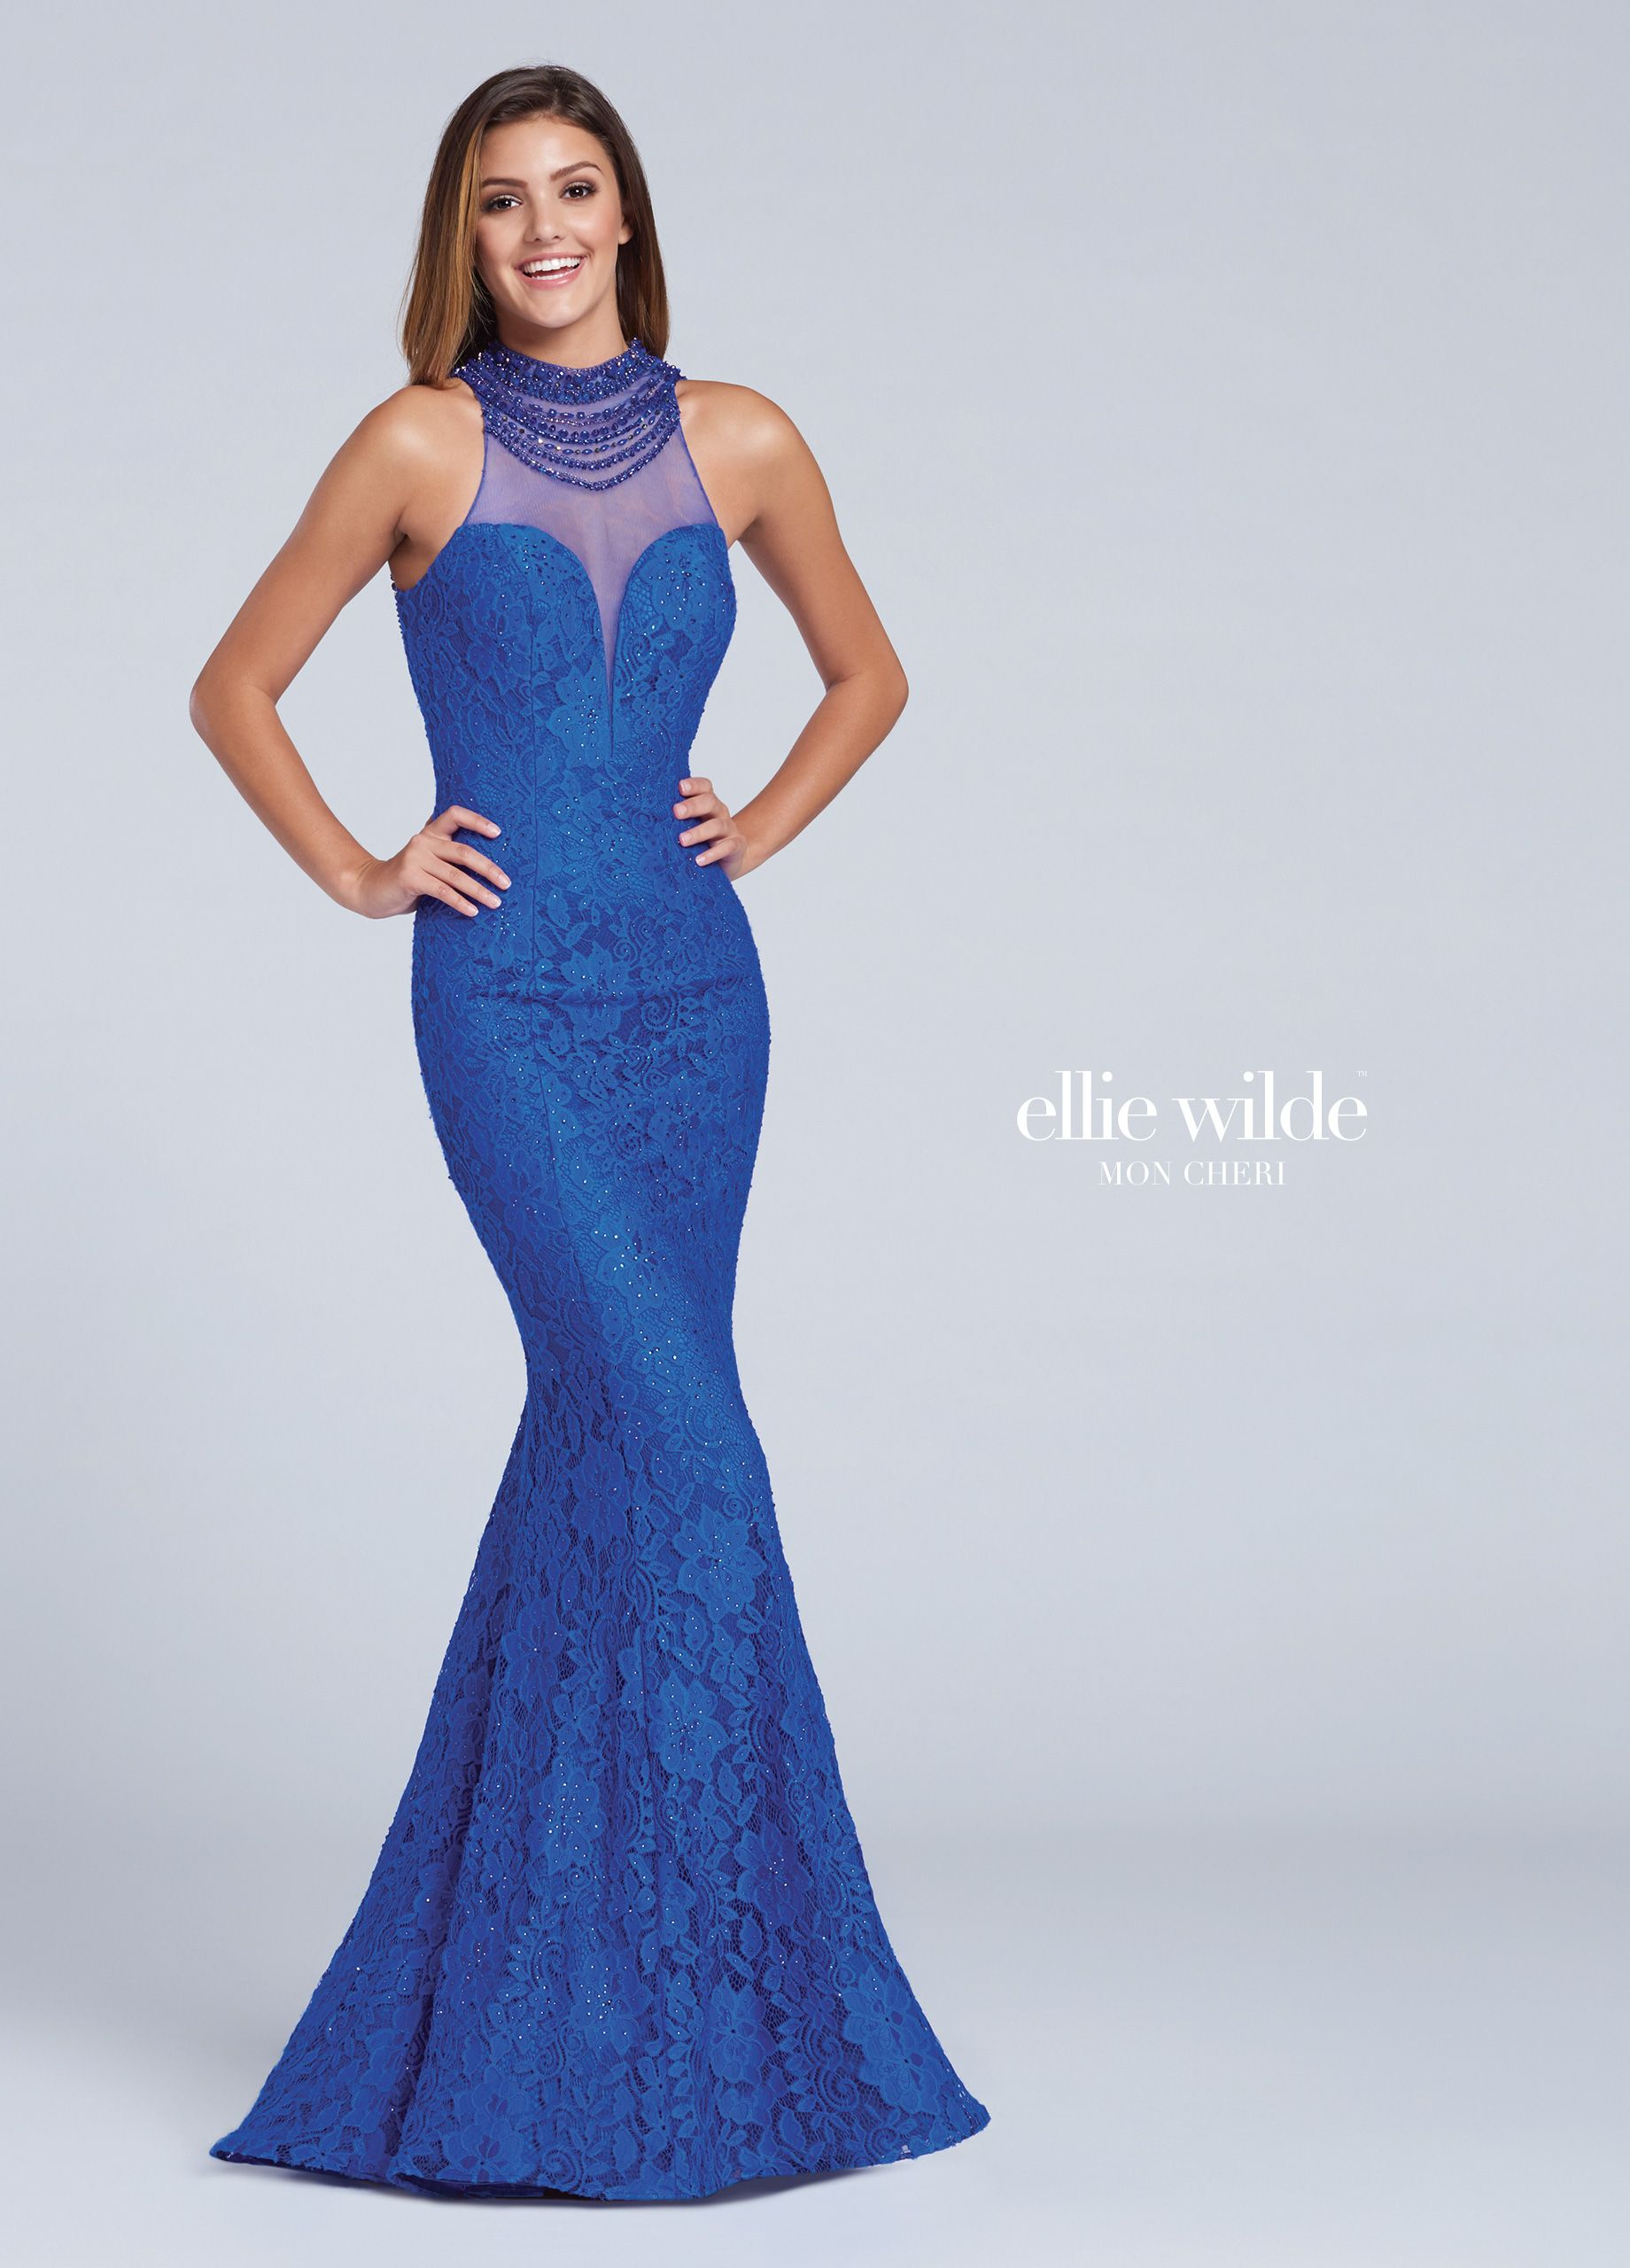 806bf783a71 Ellie Wilde EW117057 - Lace fit and flare gown with hand-beaded illusion  high halter neckline over a deep plunging sweetheart bodice